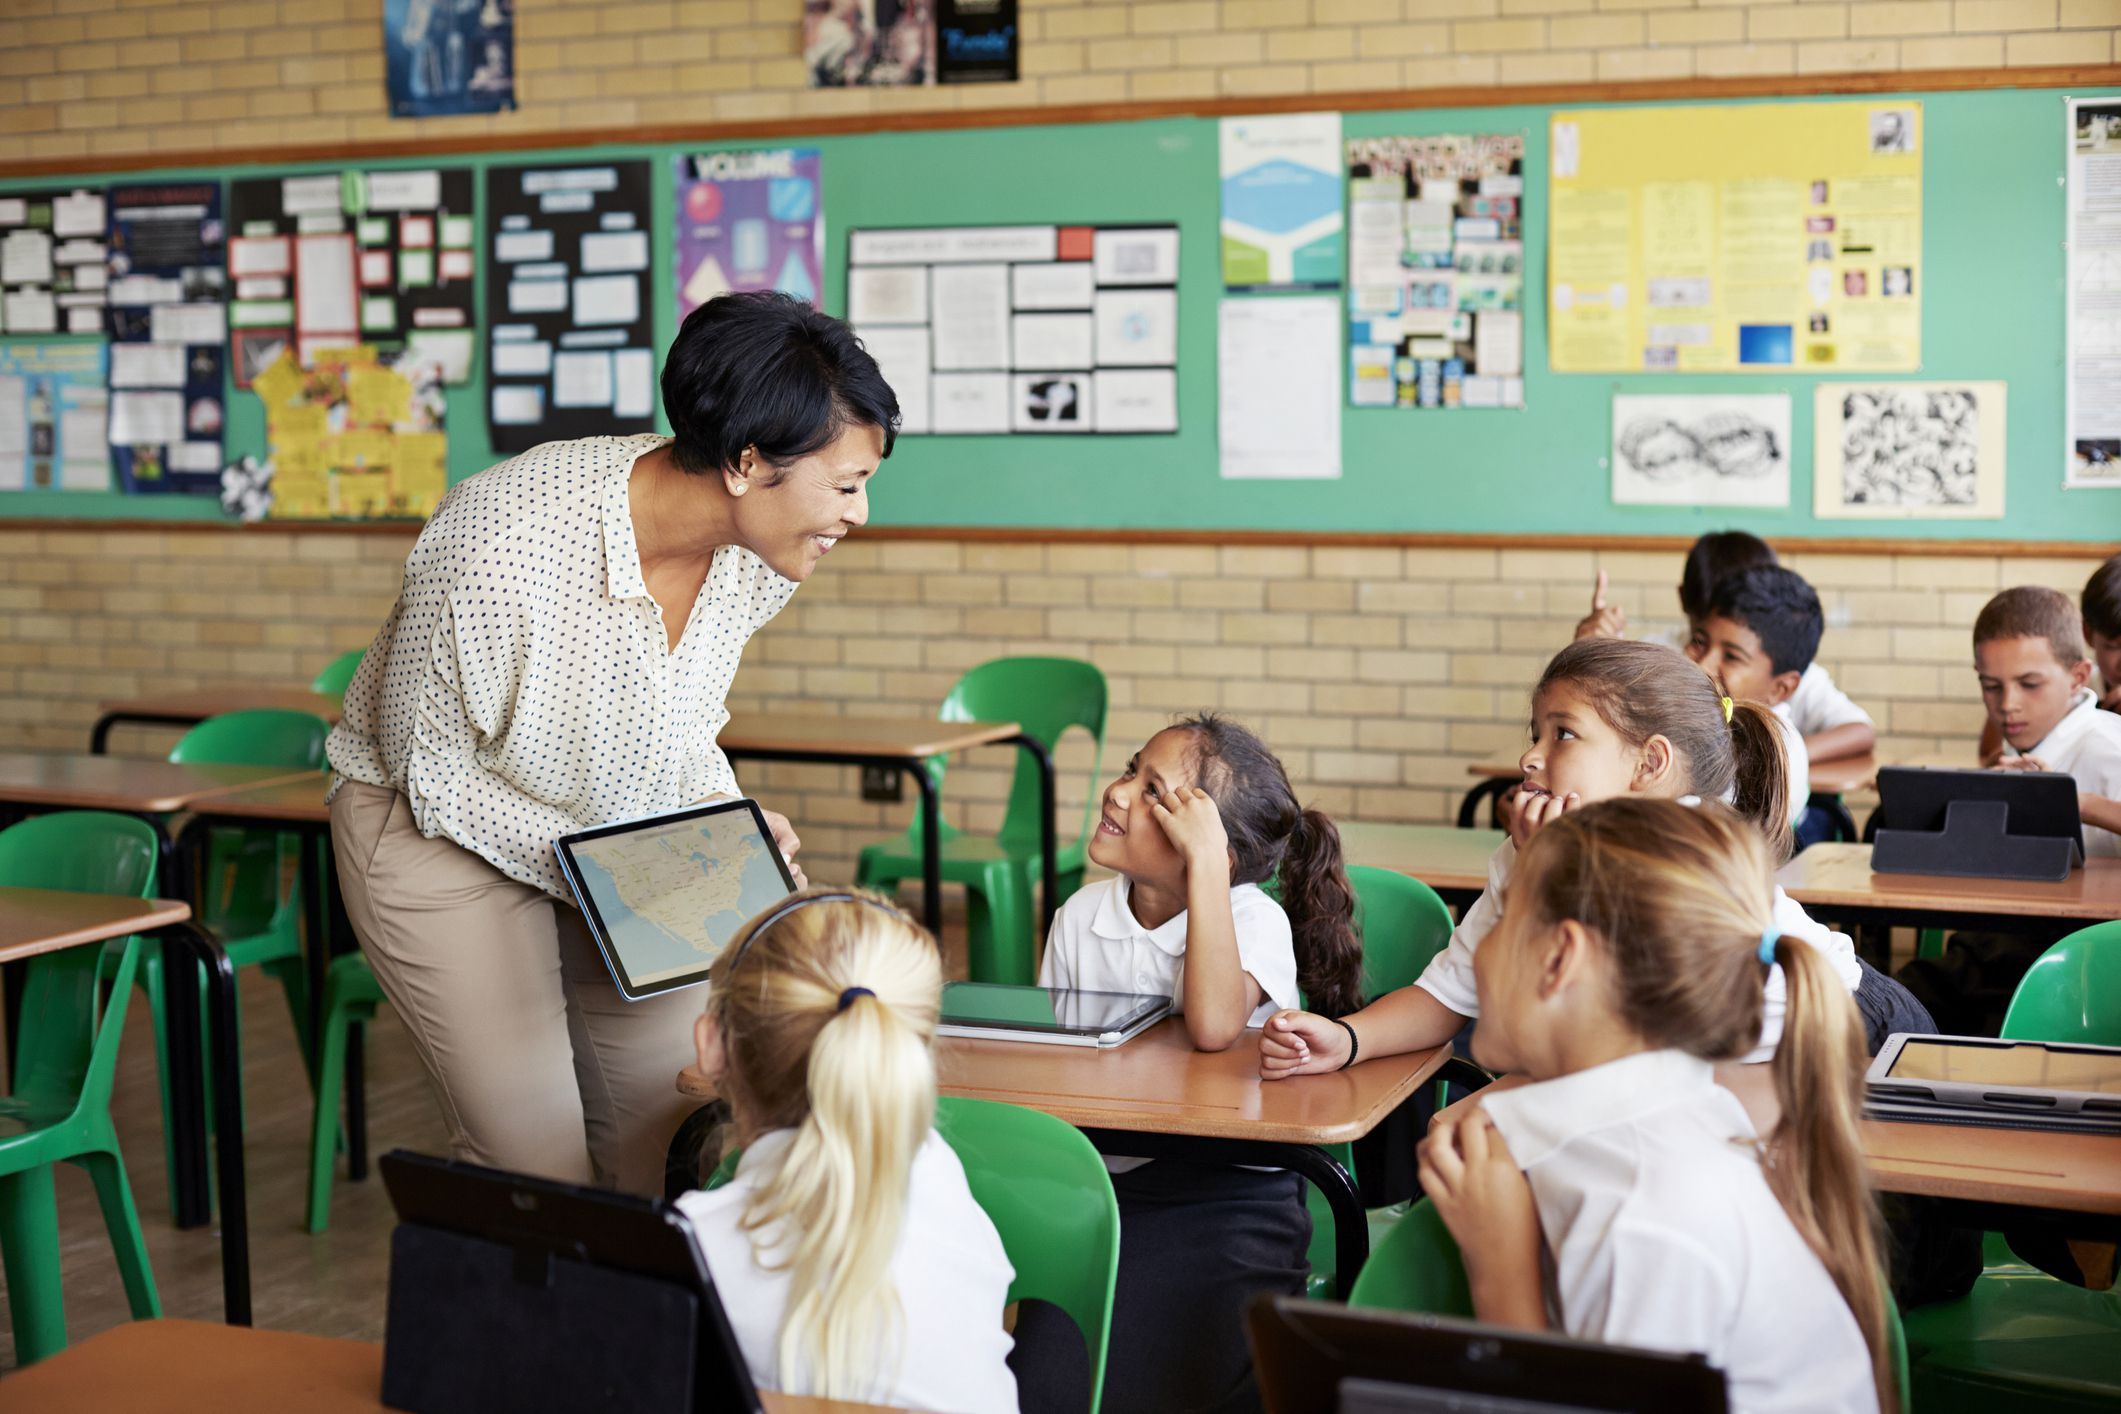 Differentiation In Special Education Classrooms